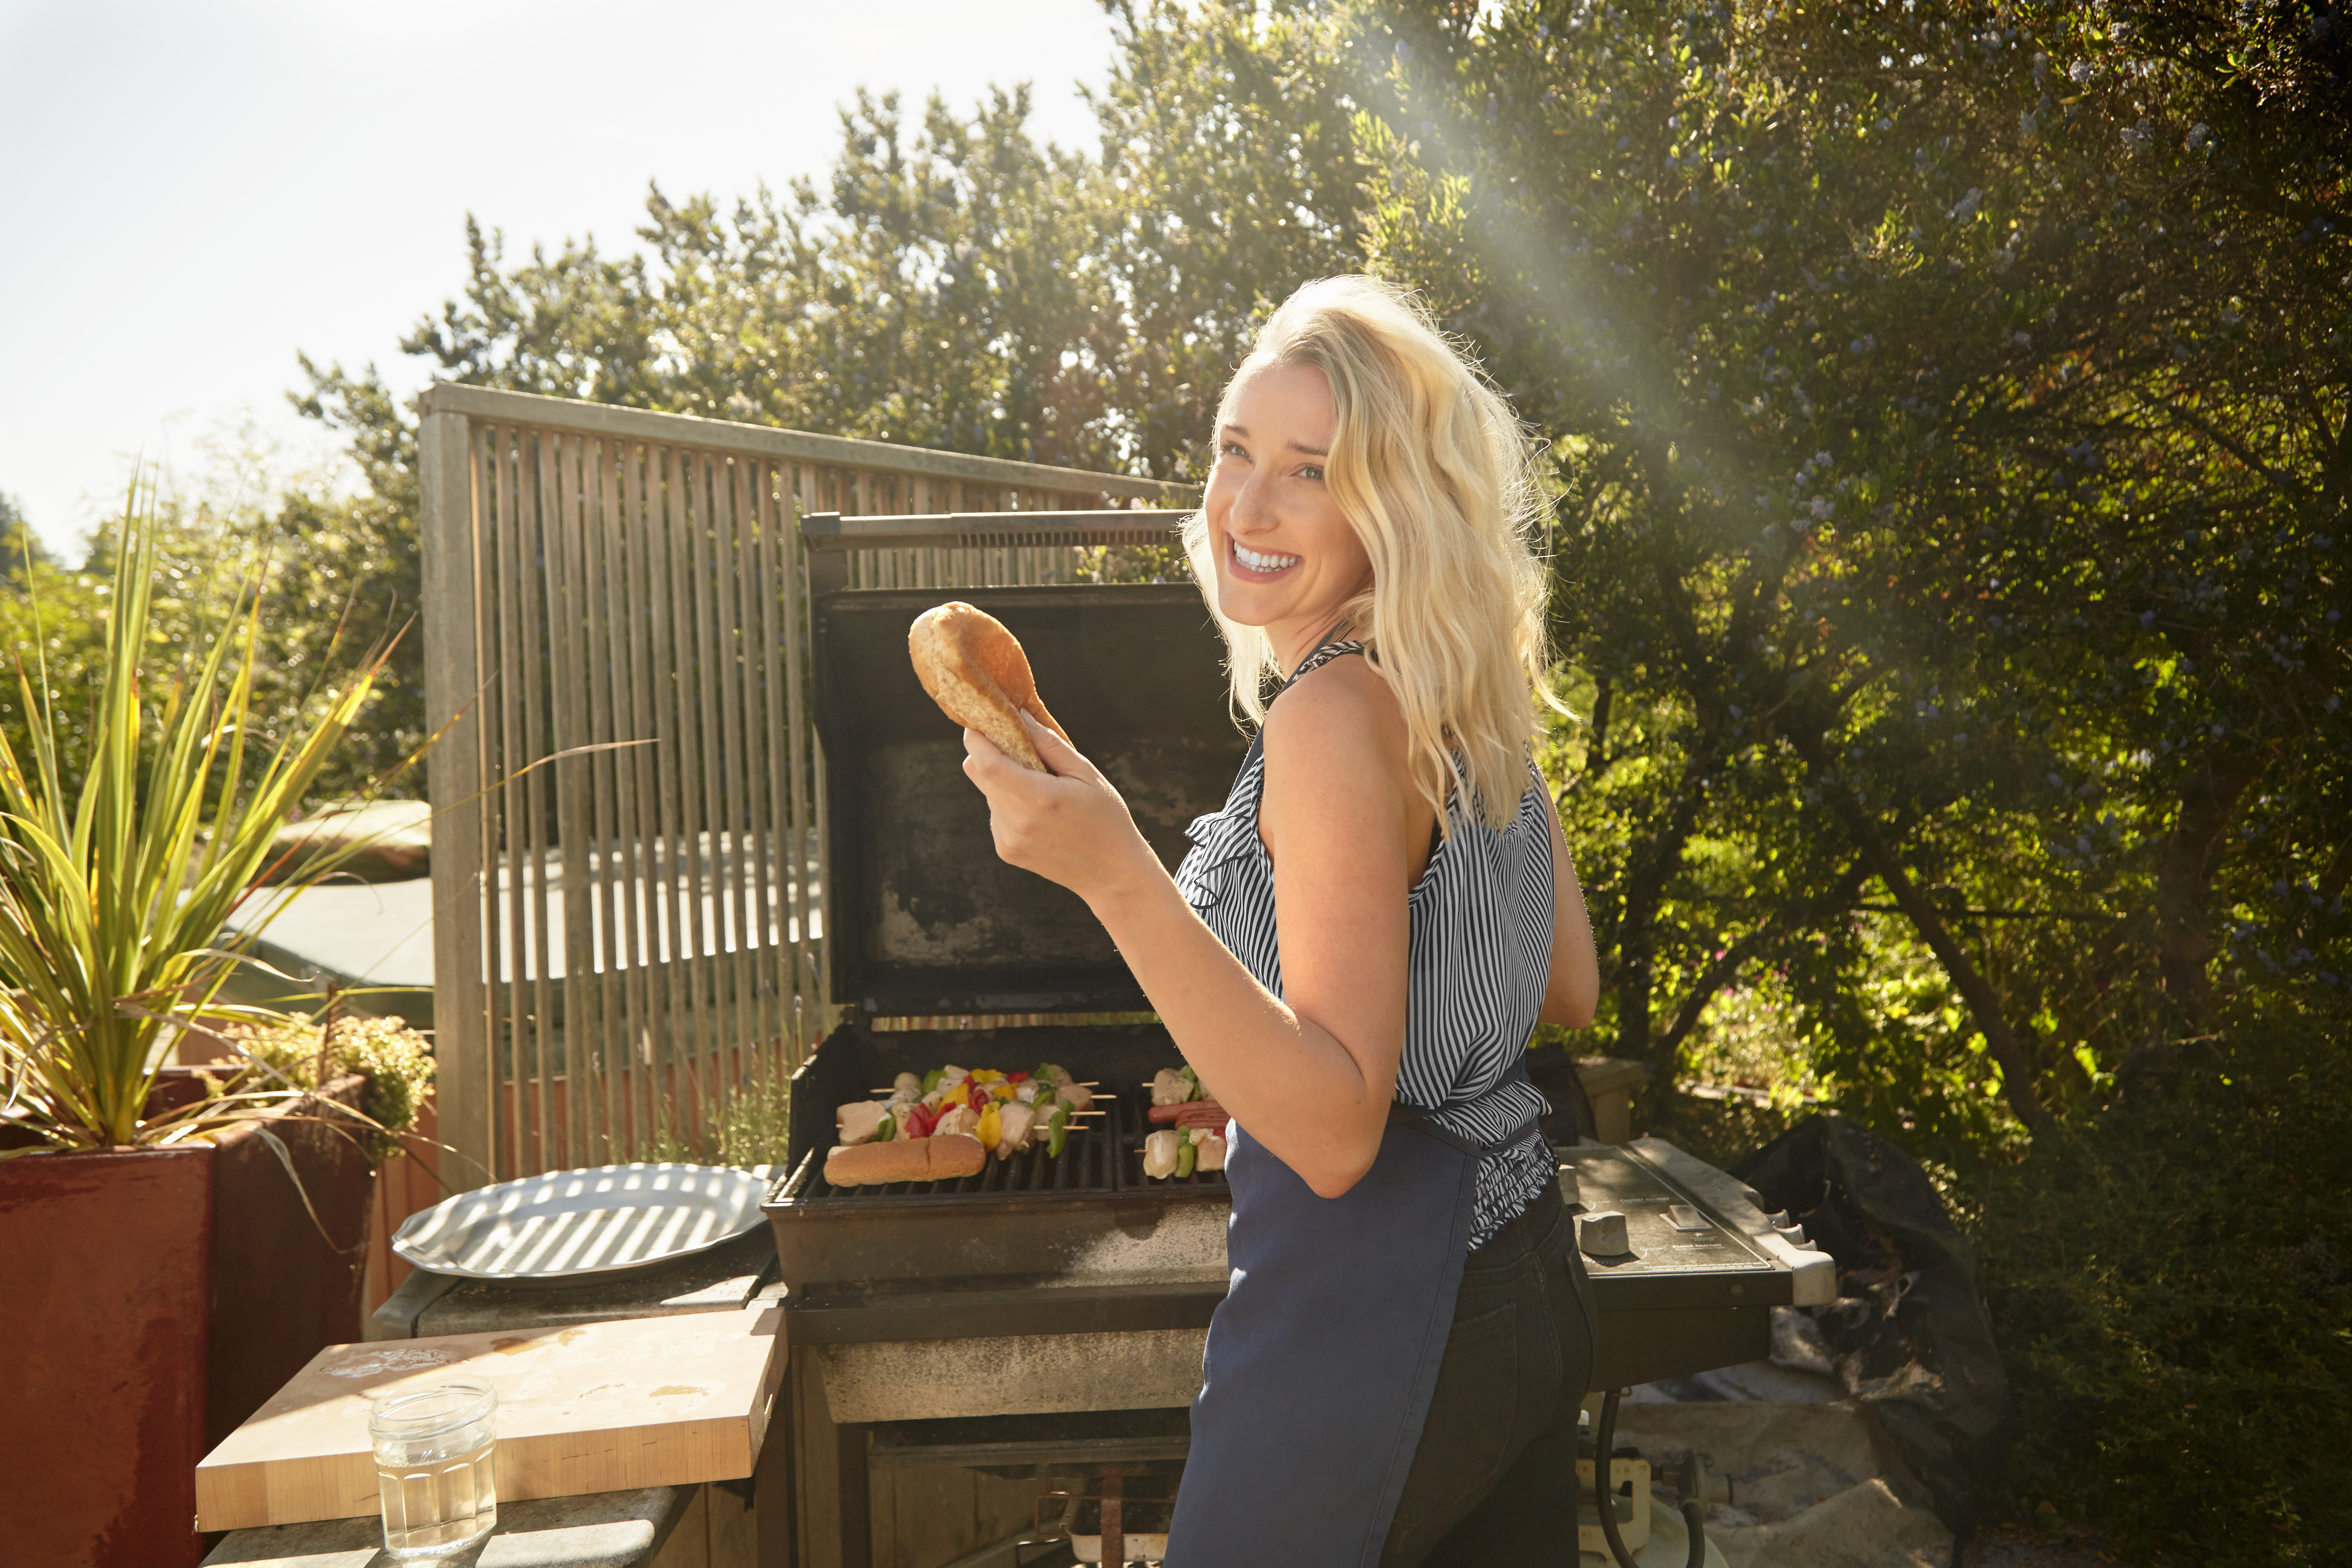 8 Gas Grills for a Healthy Backyard Barbecue